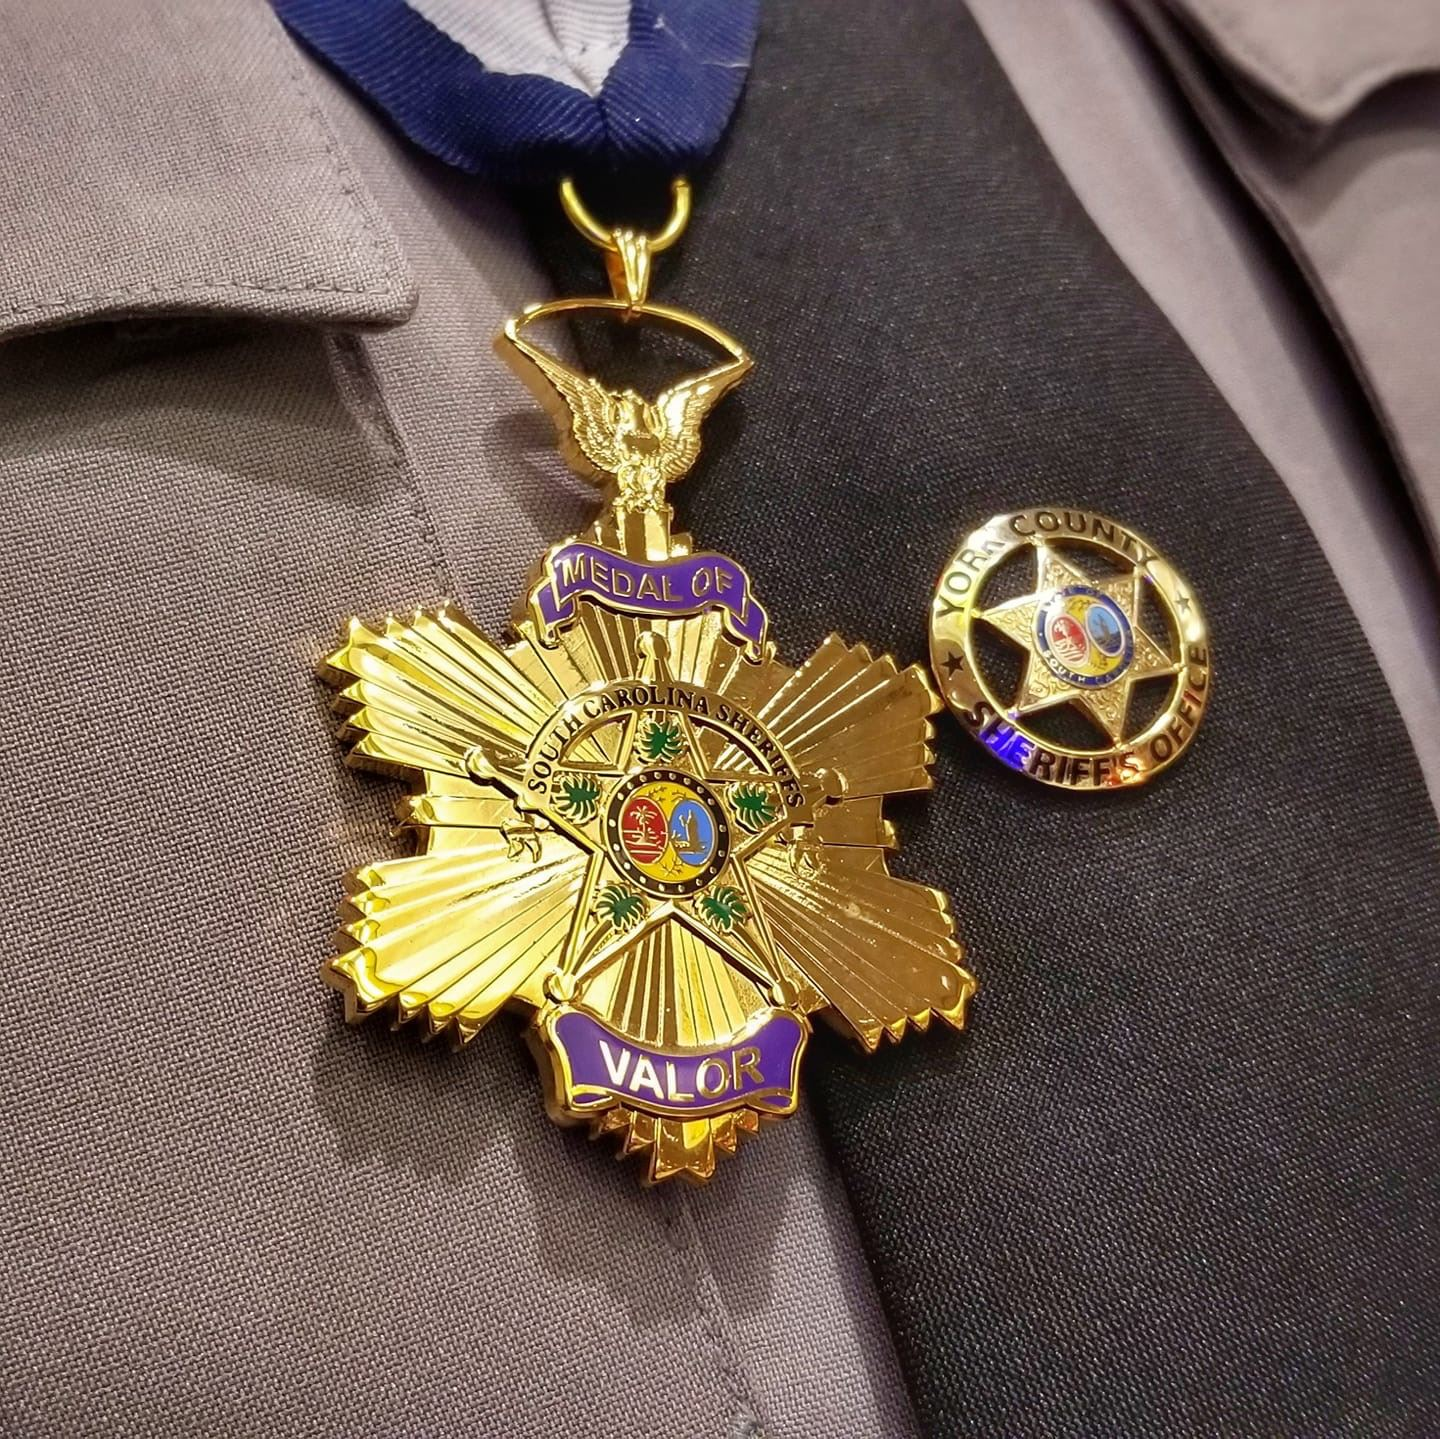 Close up picture of the Medal of Valor